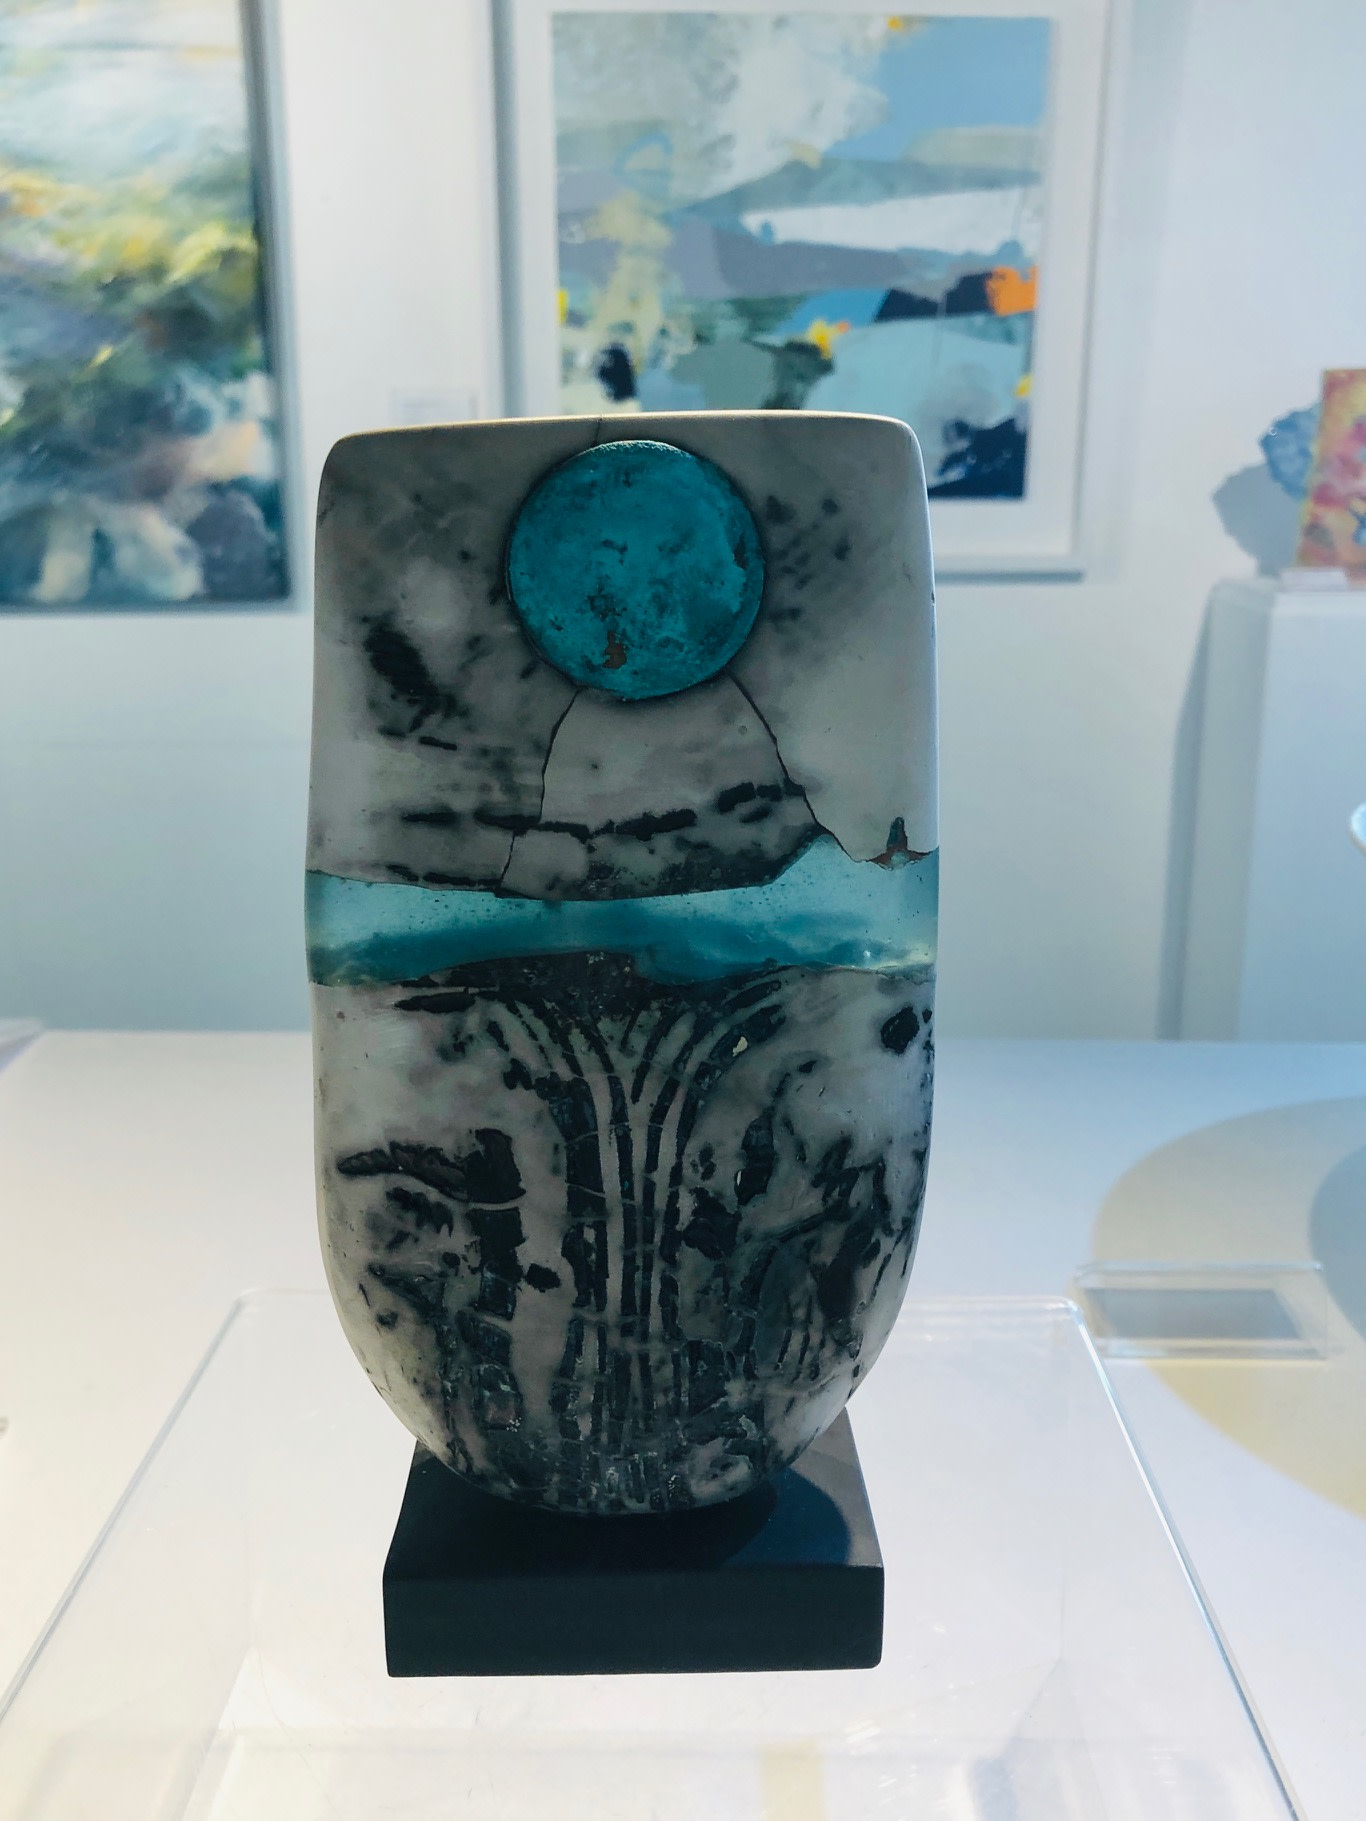 """<span class=""""link fancybox-details-link""""><a href=""""/artists/40-peter-hayes/works/6882-peter-hayes-raku-bow-blue-wave-and-disc-2020/"""">View Detail Page</a></span><div class=""""artist""""><strong>Peter Hayes</strong></div> <div class=""""title""""><em>Raku Bow Blue wave and disc</em>, 2020</div> <div class=""""dimensions"""">h. 23 cm x w. 10 cm</div><div class=""""price"""">£470.00</div><div class=""""copyright_line"""">Ownart: £47 x 10 Months, 0% APR </div>"""